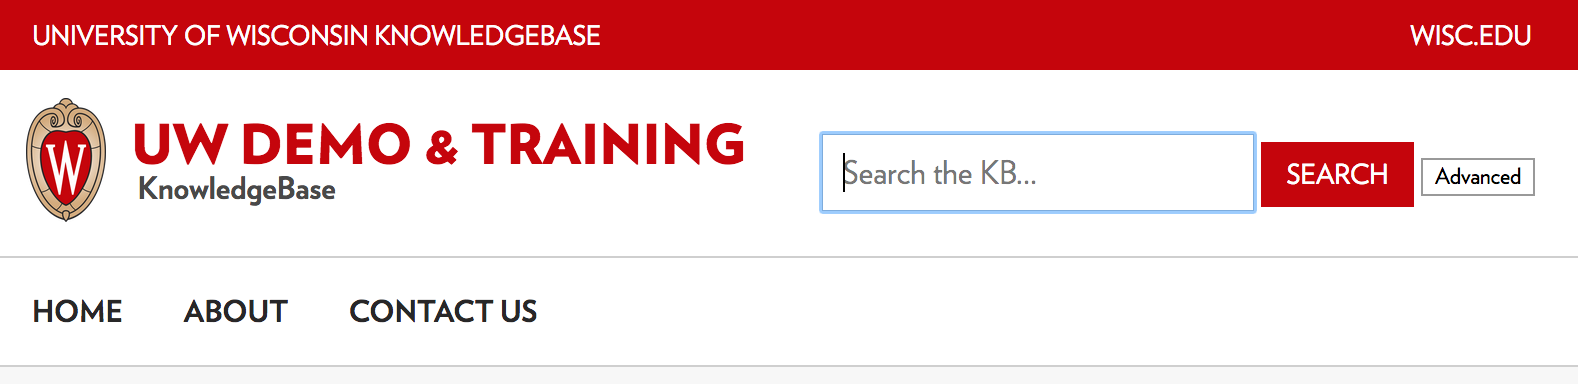 The link bar appears below both the logo and search bar